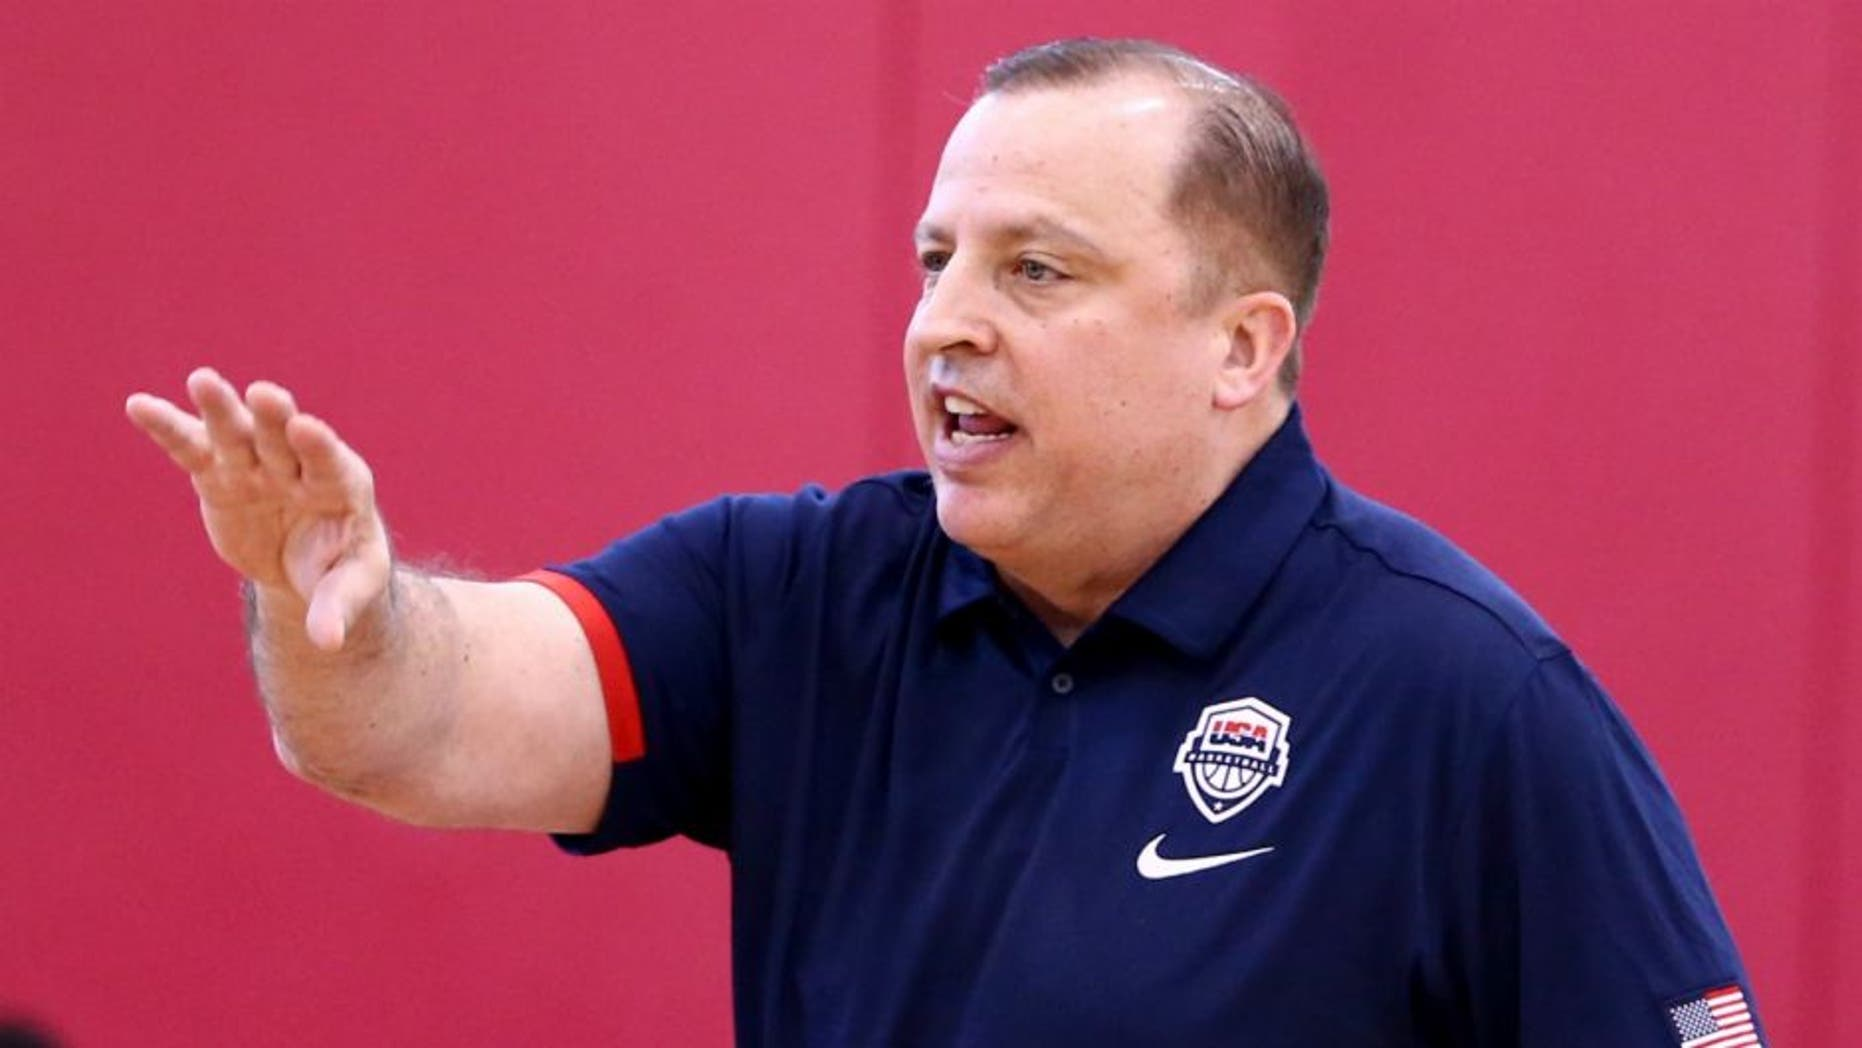 LAS VEGAS, NV - JULY 18: USA Basketball Men's National Team Assistant Coach Tom Thibodeau instructs Draymond Green #14 during practice on July 18, 2016 at Mendenhall Center on the University of Nevada, Las Vegas campus in Las Vegas, Nevada. NOTE TO USER: User expressly acknowledges and agrees that, by downloading and or using this photograph, User is consenting to the terms and conditions of the Getty Images License Agreement. Mandatory Copyright Notice: Copyright 2016 NBAE (Photo by Nathaniel S. Butler/NBAE via Getty Images),LAS VEGAS, NV - JULY 18: USA Basketball Mens National Team Assistant Coach Tom Thibodeau instructs Draymond Green #14 during practice on July 18, 2016 at Mendenhall Center on the University of Nevada, Las Vegas campus in Las Vegas, Nevada. NOTE TO USER: User expressly acknowledges and agrees that, by downloading and or using this photograph, User is consenting to the terms and conditions of the Getty Images License Agreement. Mandatory Copyright Notice: Copyright 2016 NBAE (Photo by Nathaniel S. Butler/NBAE via Getty Images)